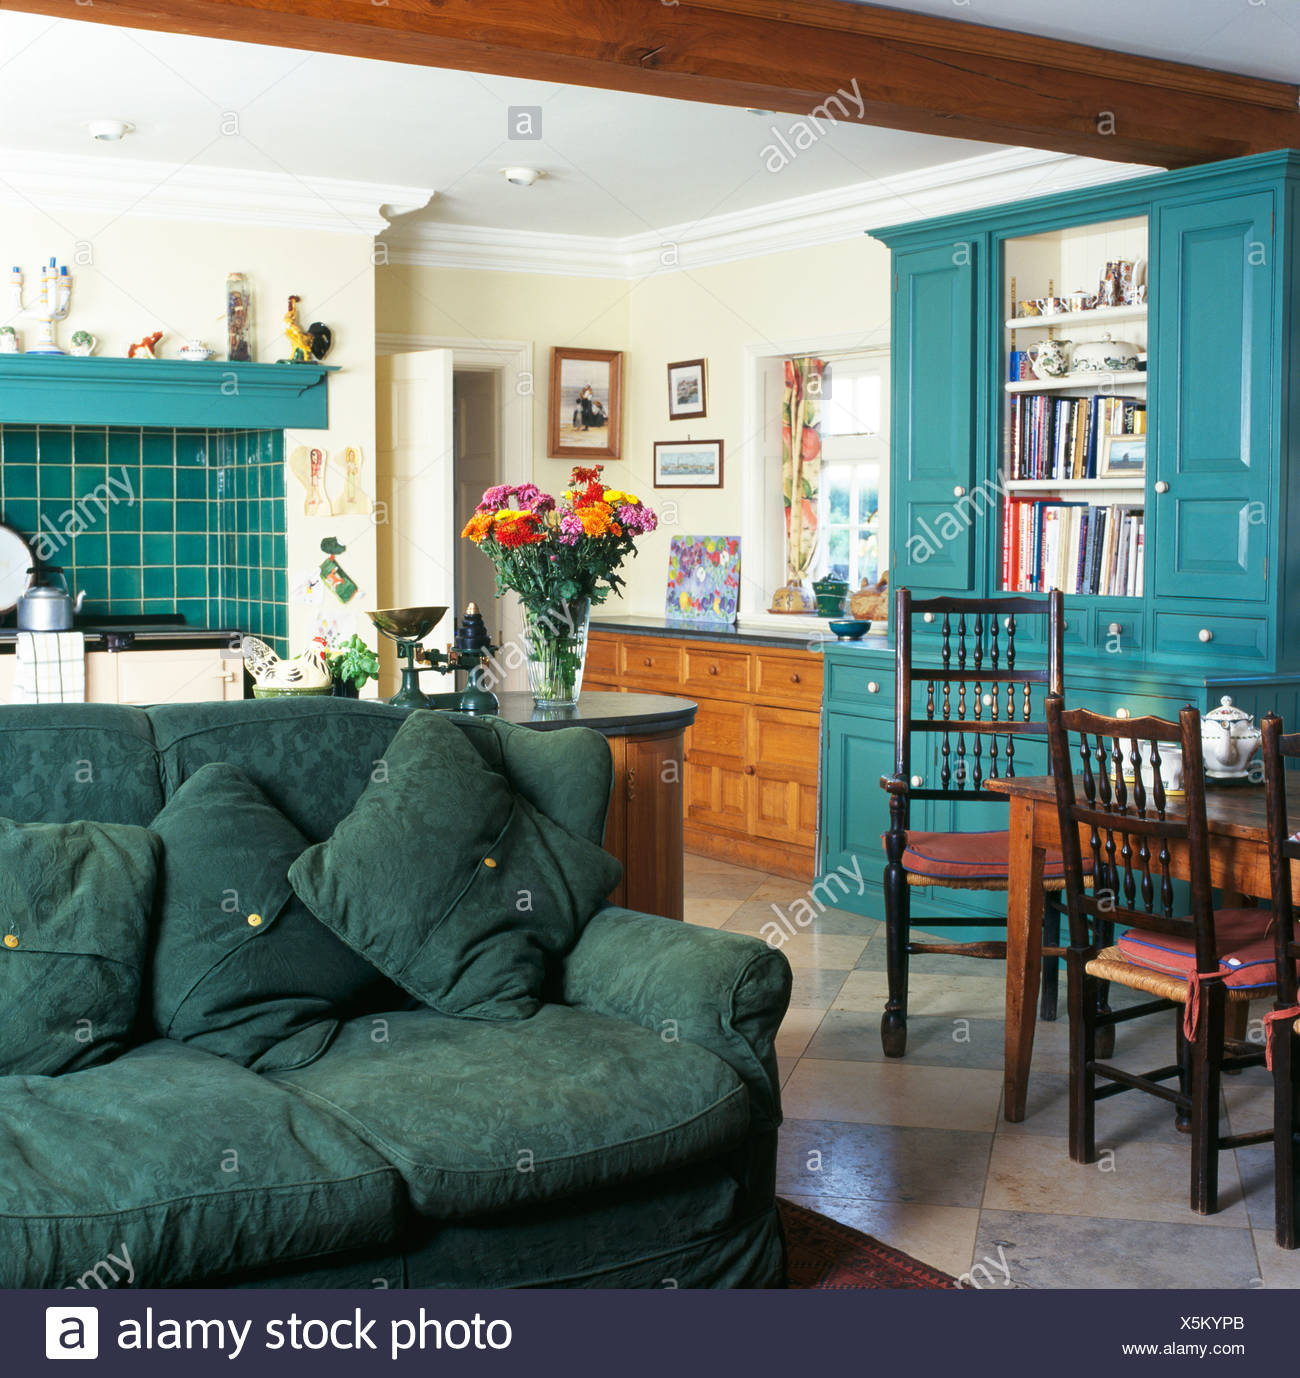 Green Sofa In Traditional Country Kitchen Dining Room With Turquoise  Painted Fitted Dresser